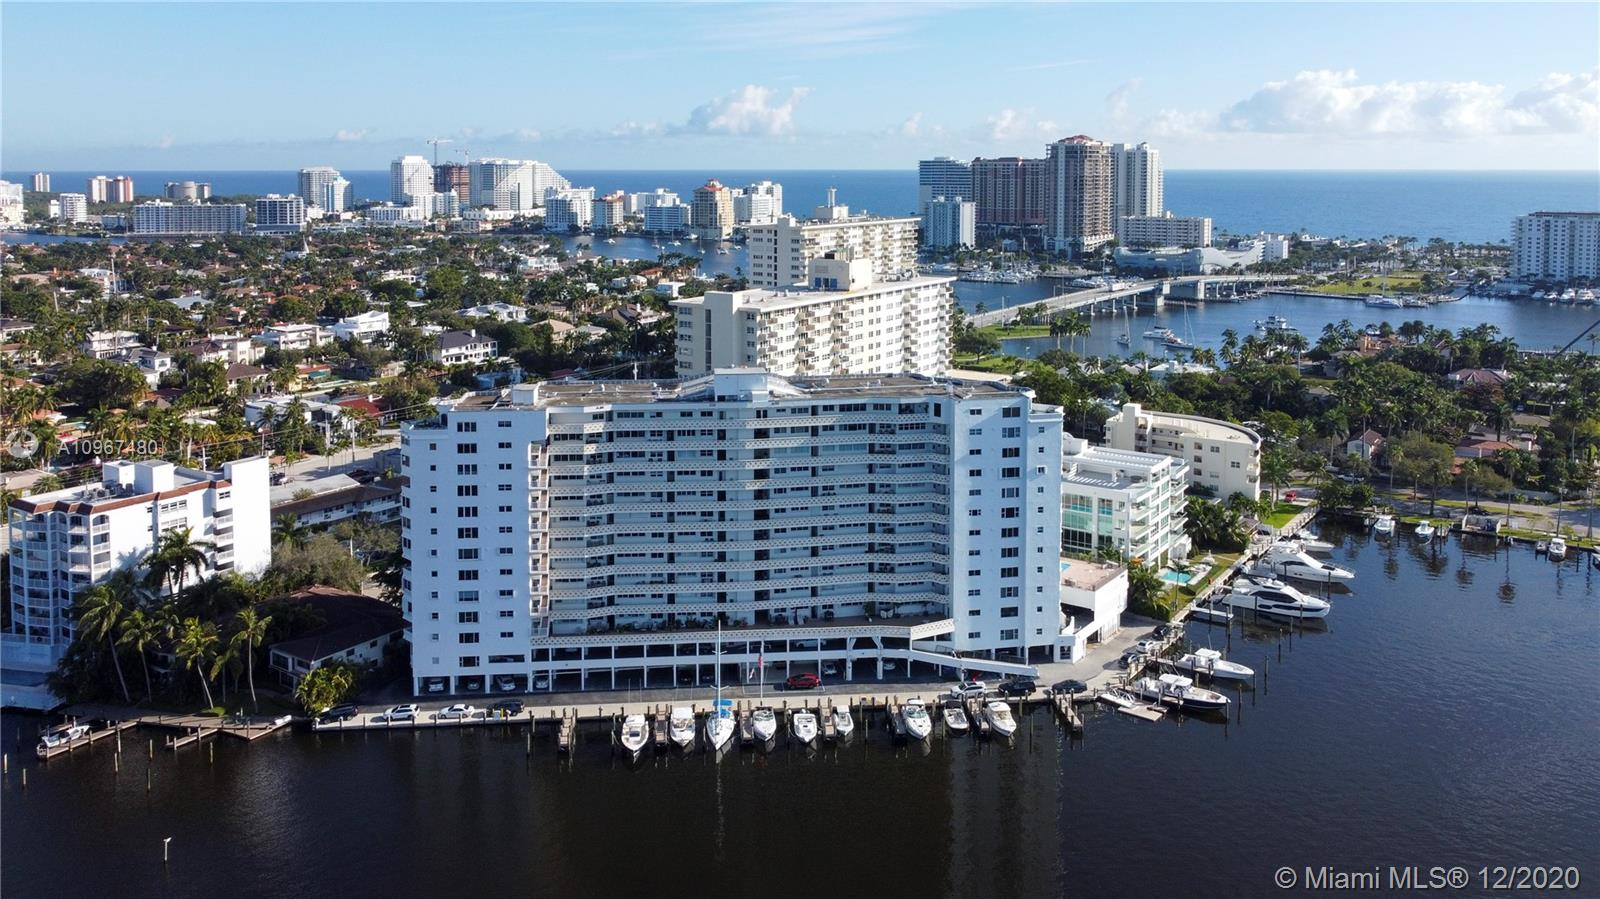 Welcome to Paradise! Gorgeous waterfront condo located in the heart of Las Olas. Boaters welcome with docks available that can accommodate up to a 60' boat with no fixed bridges. Very short boat ride to the Ft Lauderdale inlet. This unit has been professionally upgraded with no detail or expense spared! Enjoy marble floors throughout, a custom wood kitchen with quartz countertops, top of the line sub-zero appliances, impact windows and doors, motorized blinds, new bathrooms, and much more. Enjoy tranquil Ocean and Bay views from every opening. The four seasons condominium is very desirable with amenities galore, heated pool, 24-hour security, parking, BBQ paddle board launch area and much more. Once in a lifetime investment opportunity and will not last.